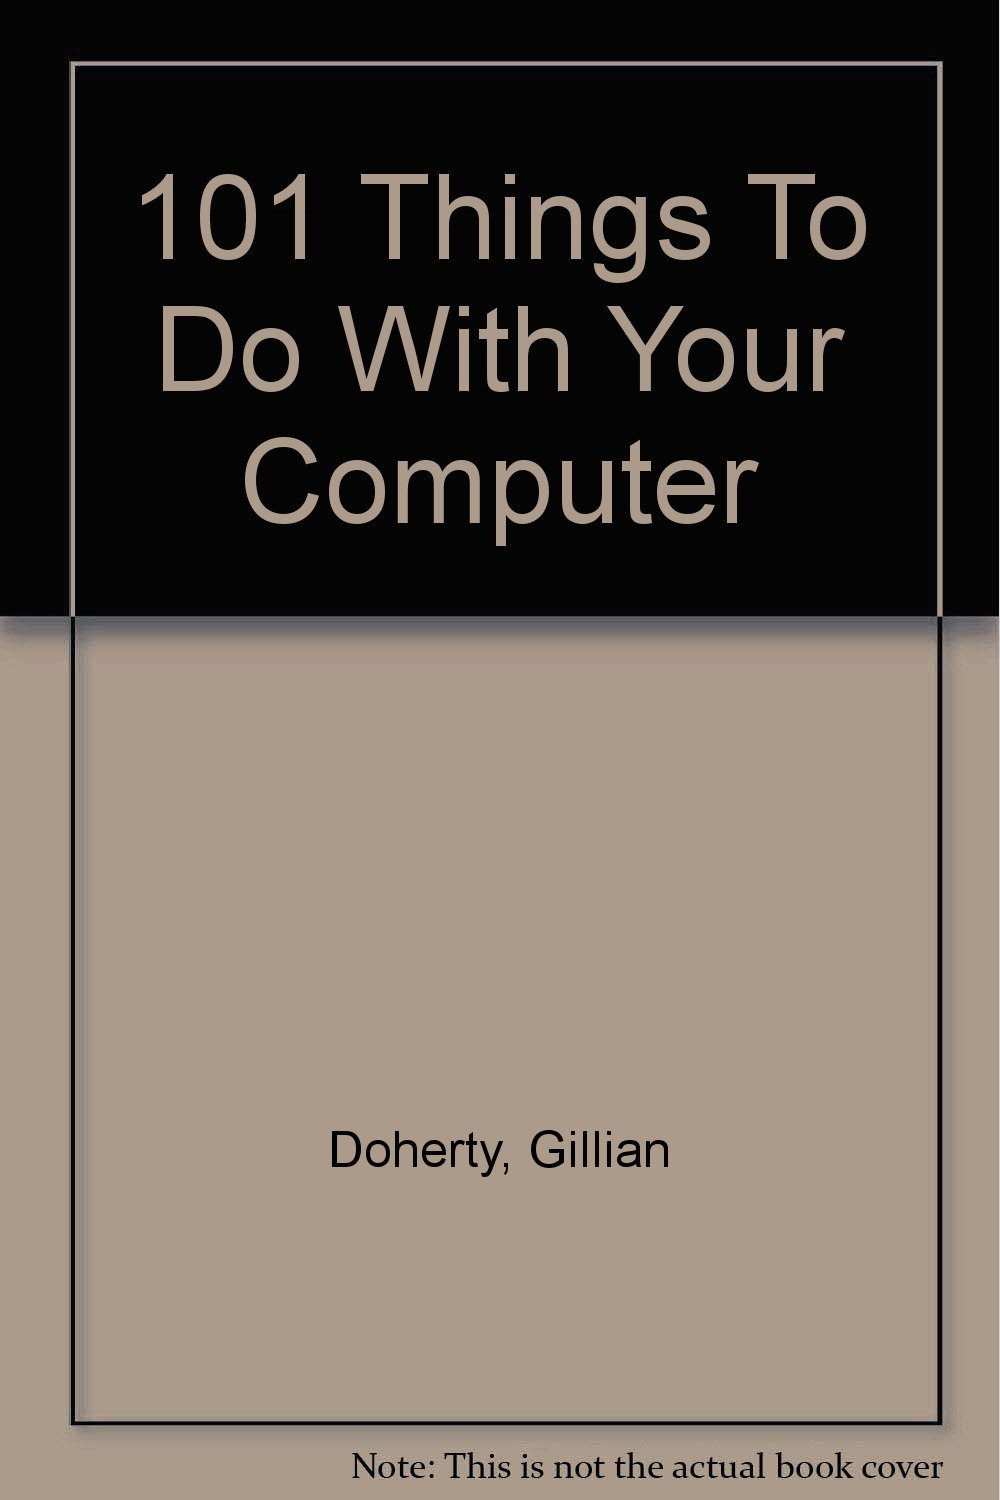 101 Things To Do With Your Computer: Gillian Doherty: 9780613744737:  Amazon.com: Books